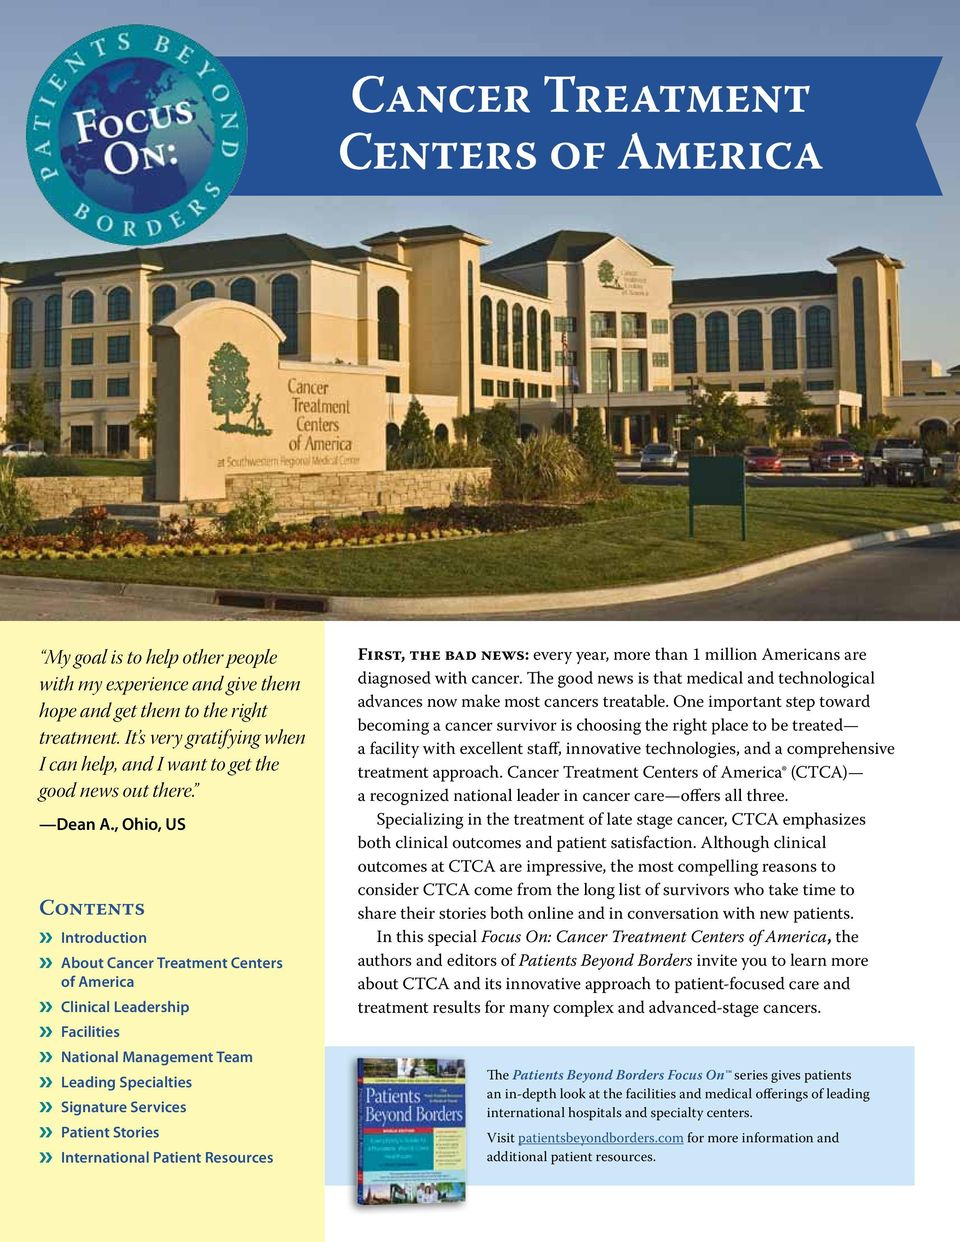 , Ohio, US Contents Introduction About Cancer Treatment Centers of America Clinical Leadership Facilities National Management Team Leading Specialties Signature Services Patient Stories International